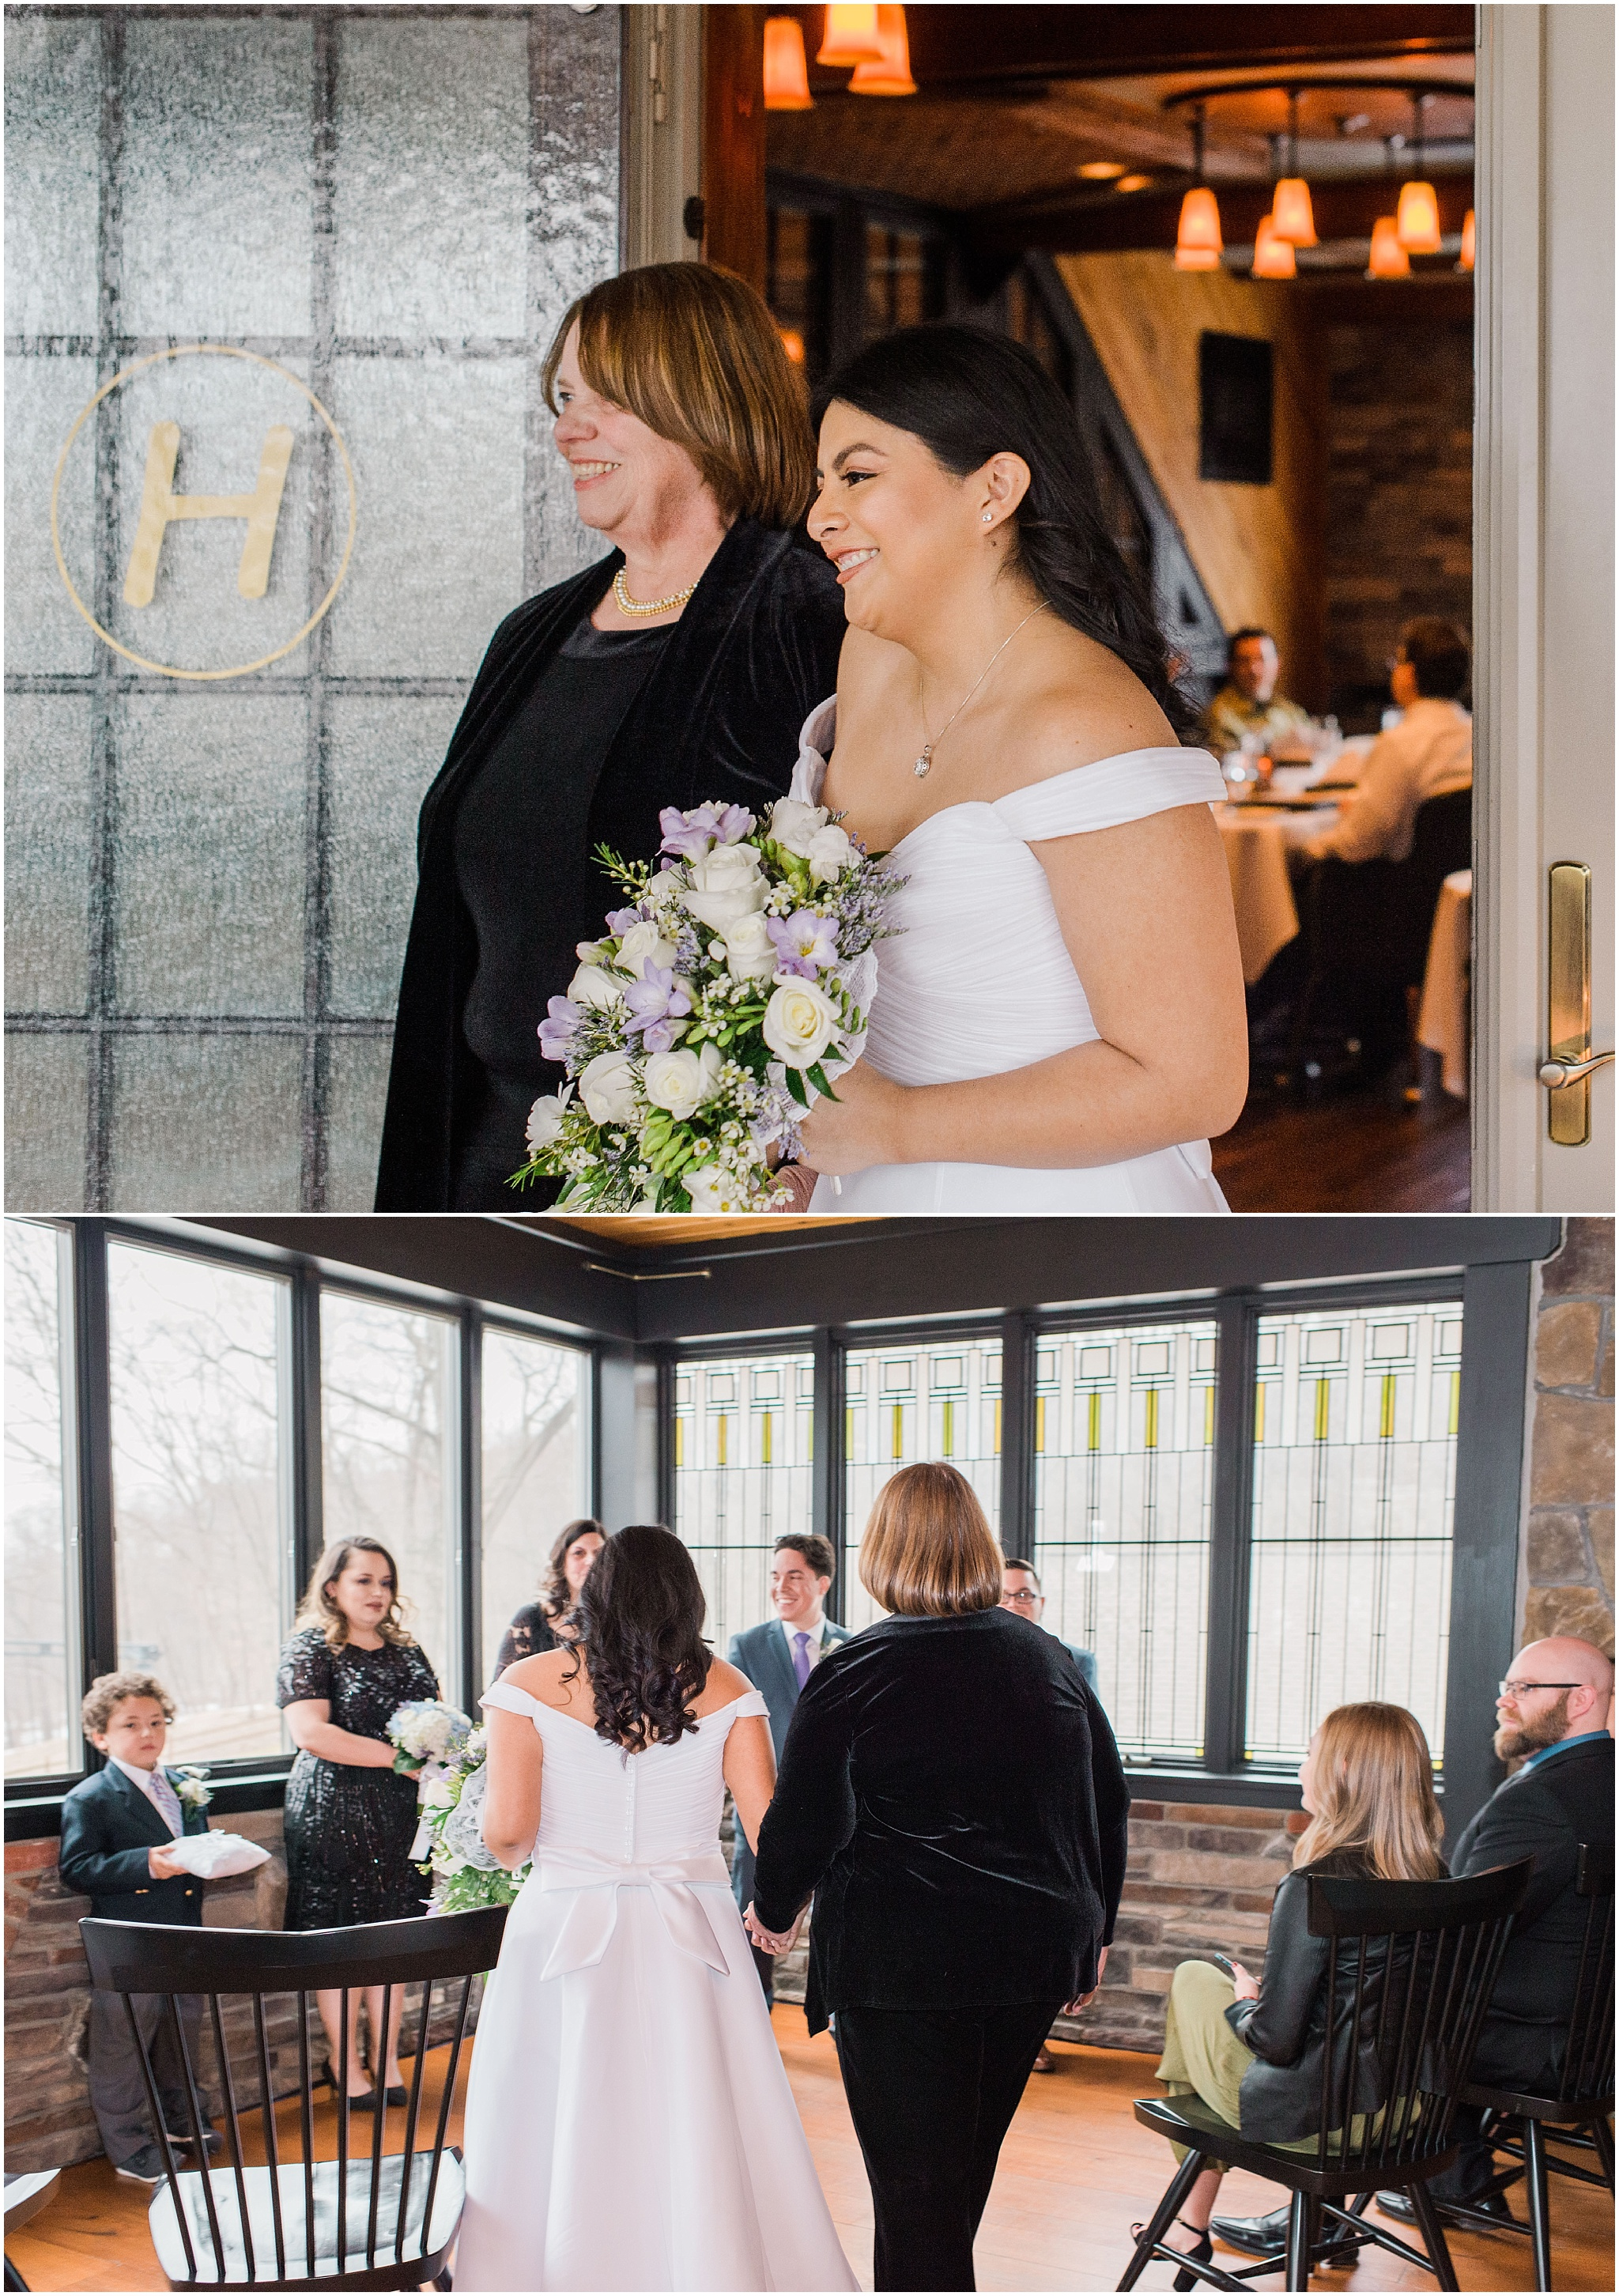 bride walking into wedding ceremony space with her Mom and seeing her groom for the first time for their intimate wedding ceremony, elopement